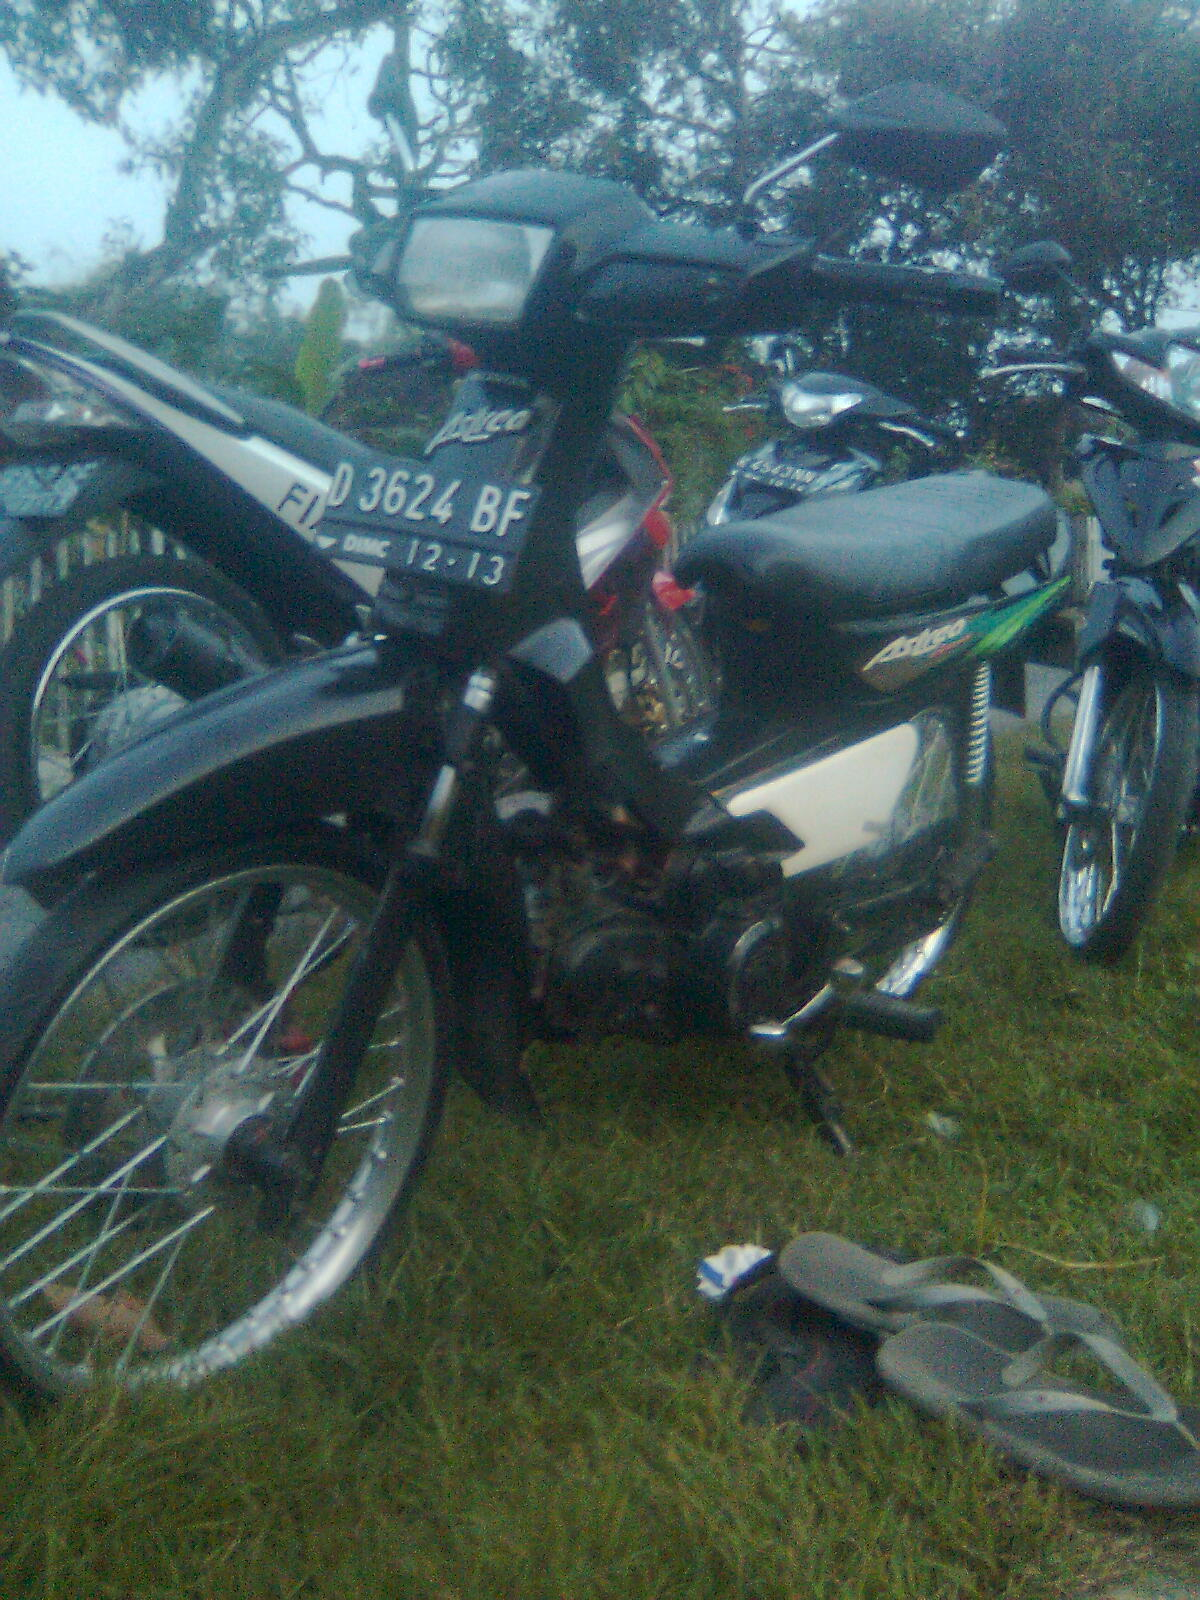 Tips Cara Modif Motor Cara Dan Tips Modif Motor Astrea Grand Simple